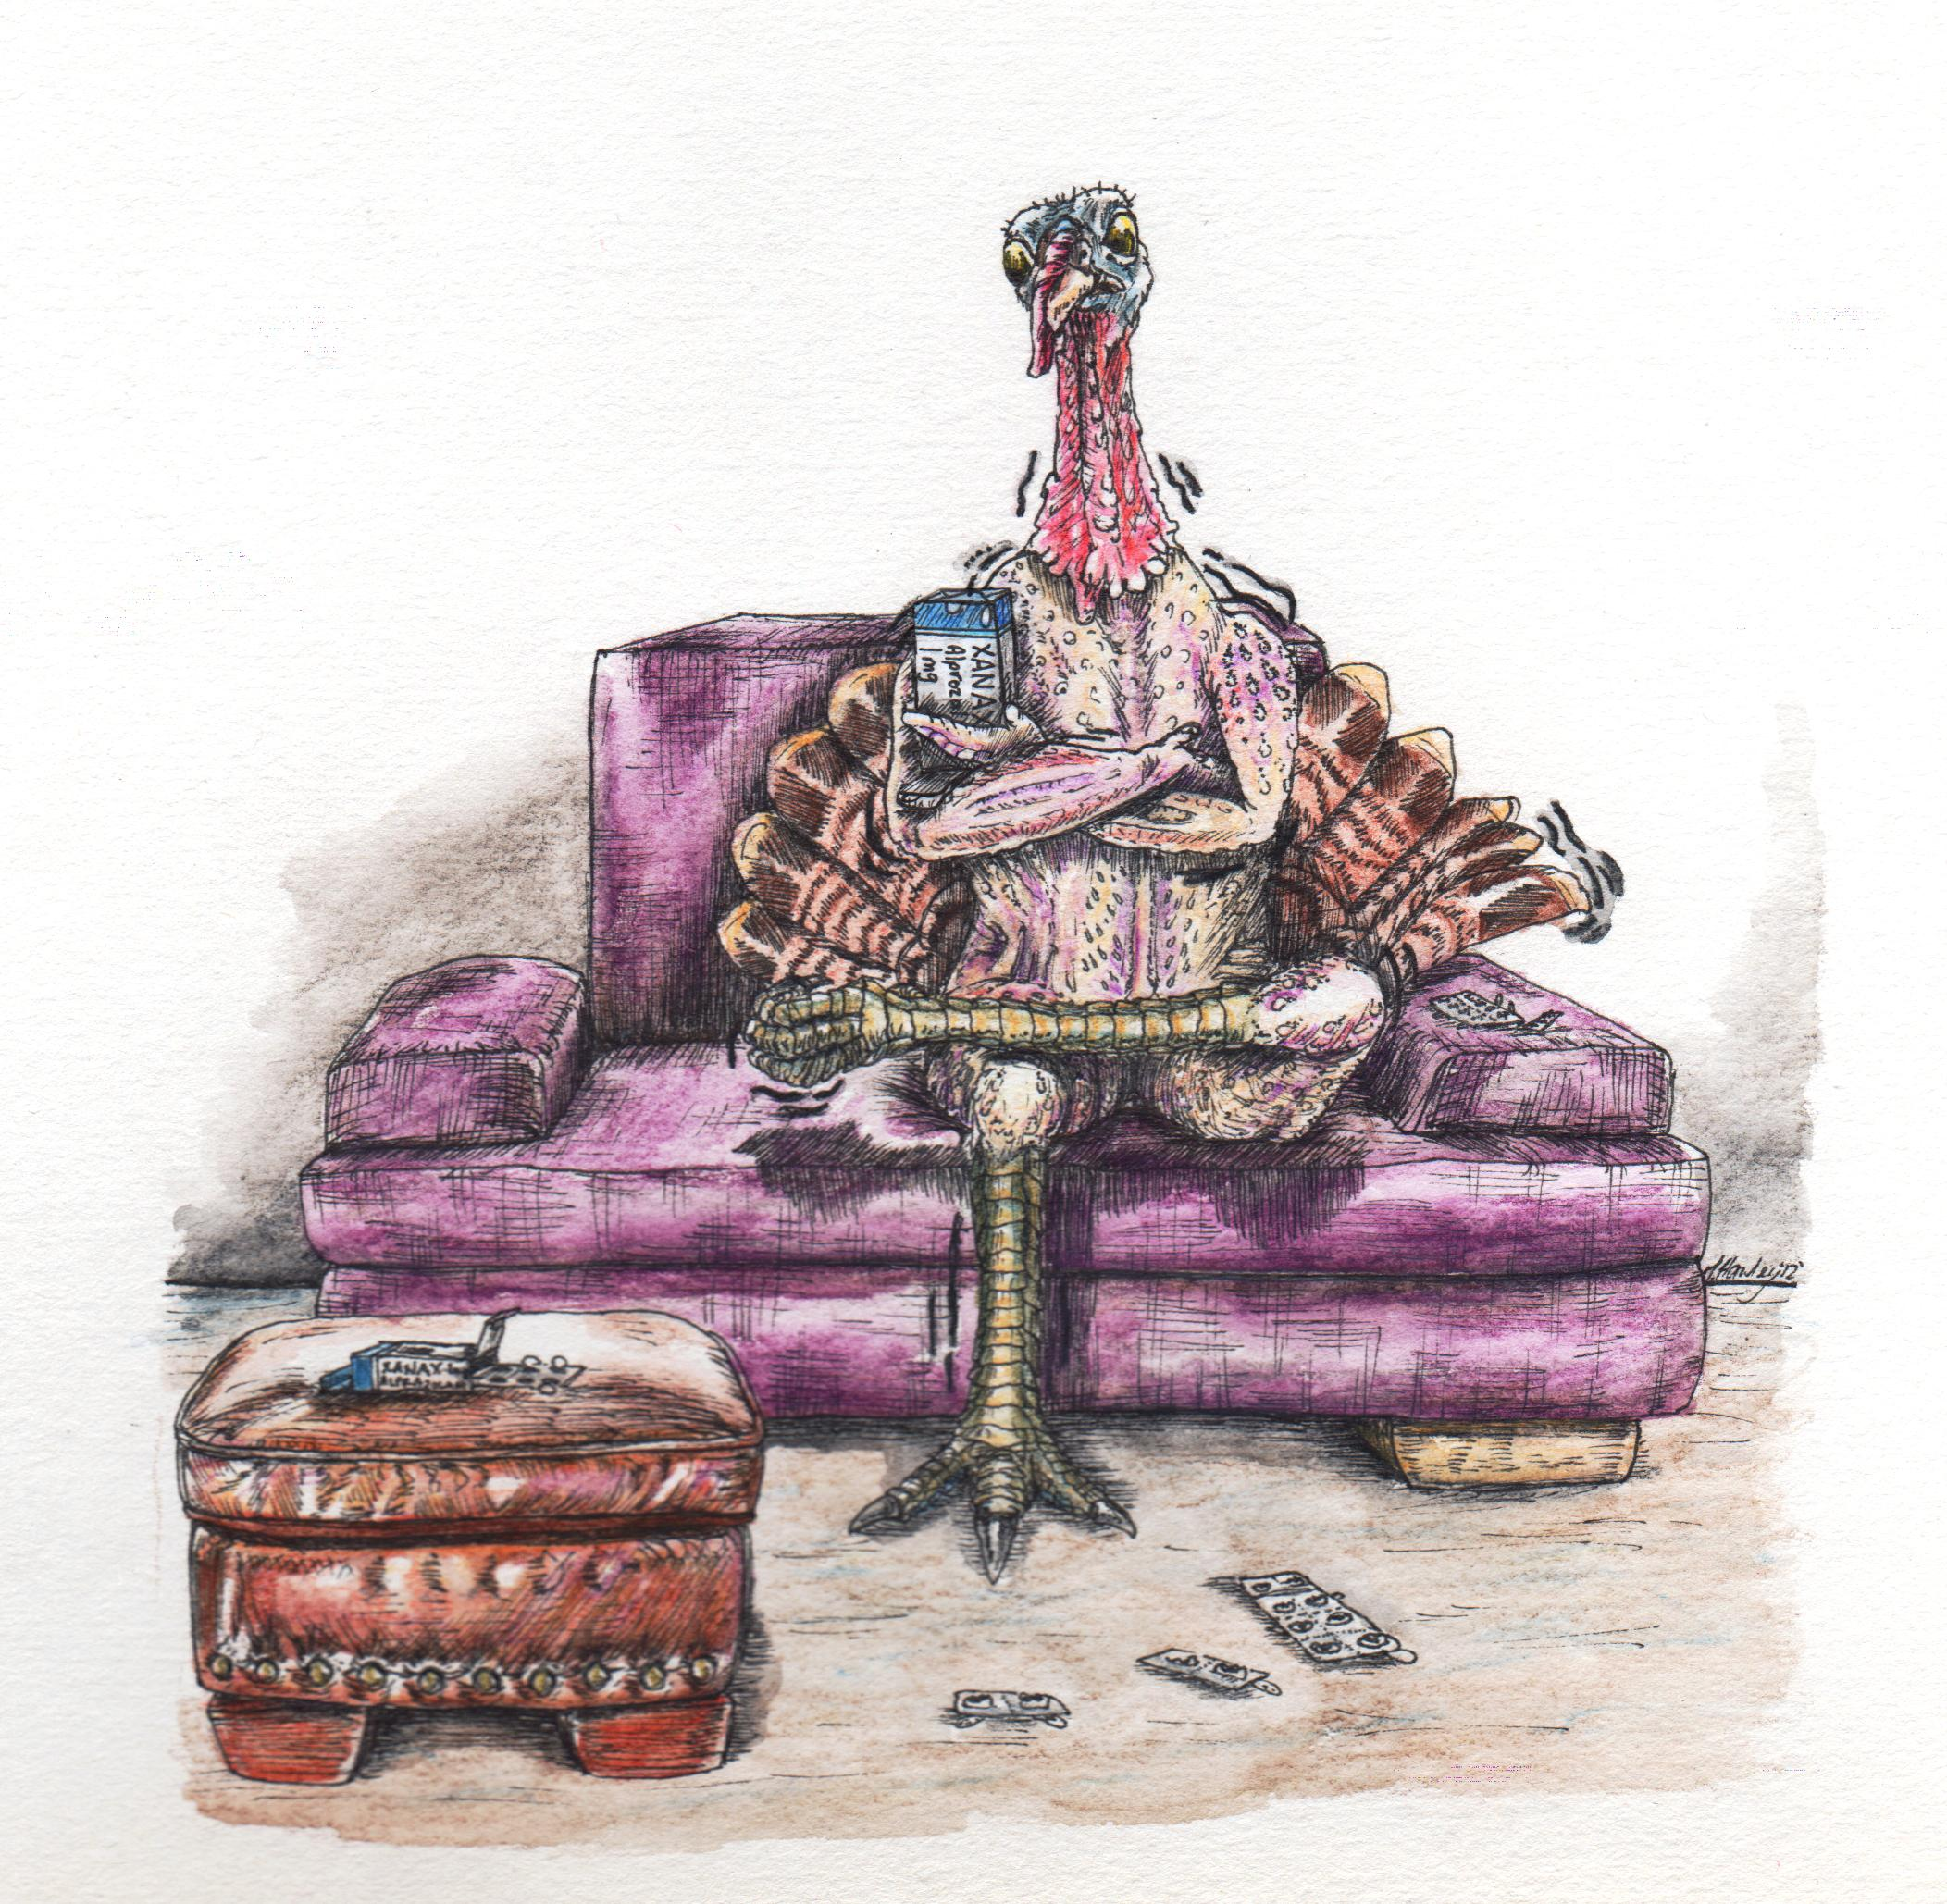 Cold Turkey – I was asked to do an illustration of a cold turkey going 'cold turkey' on Xanax.